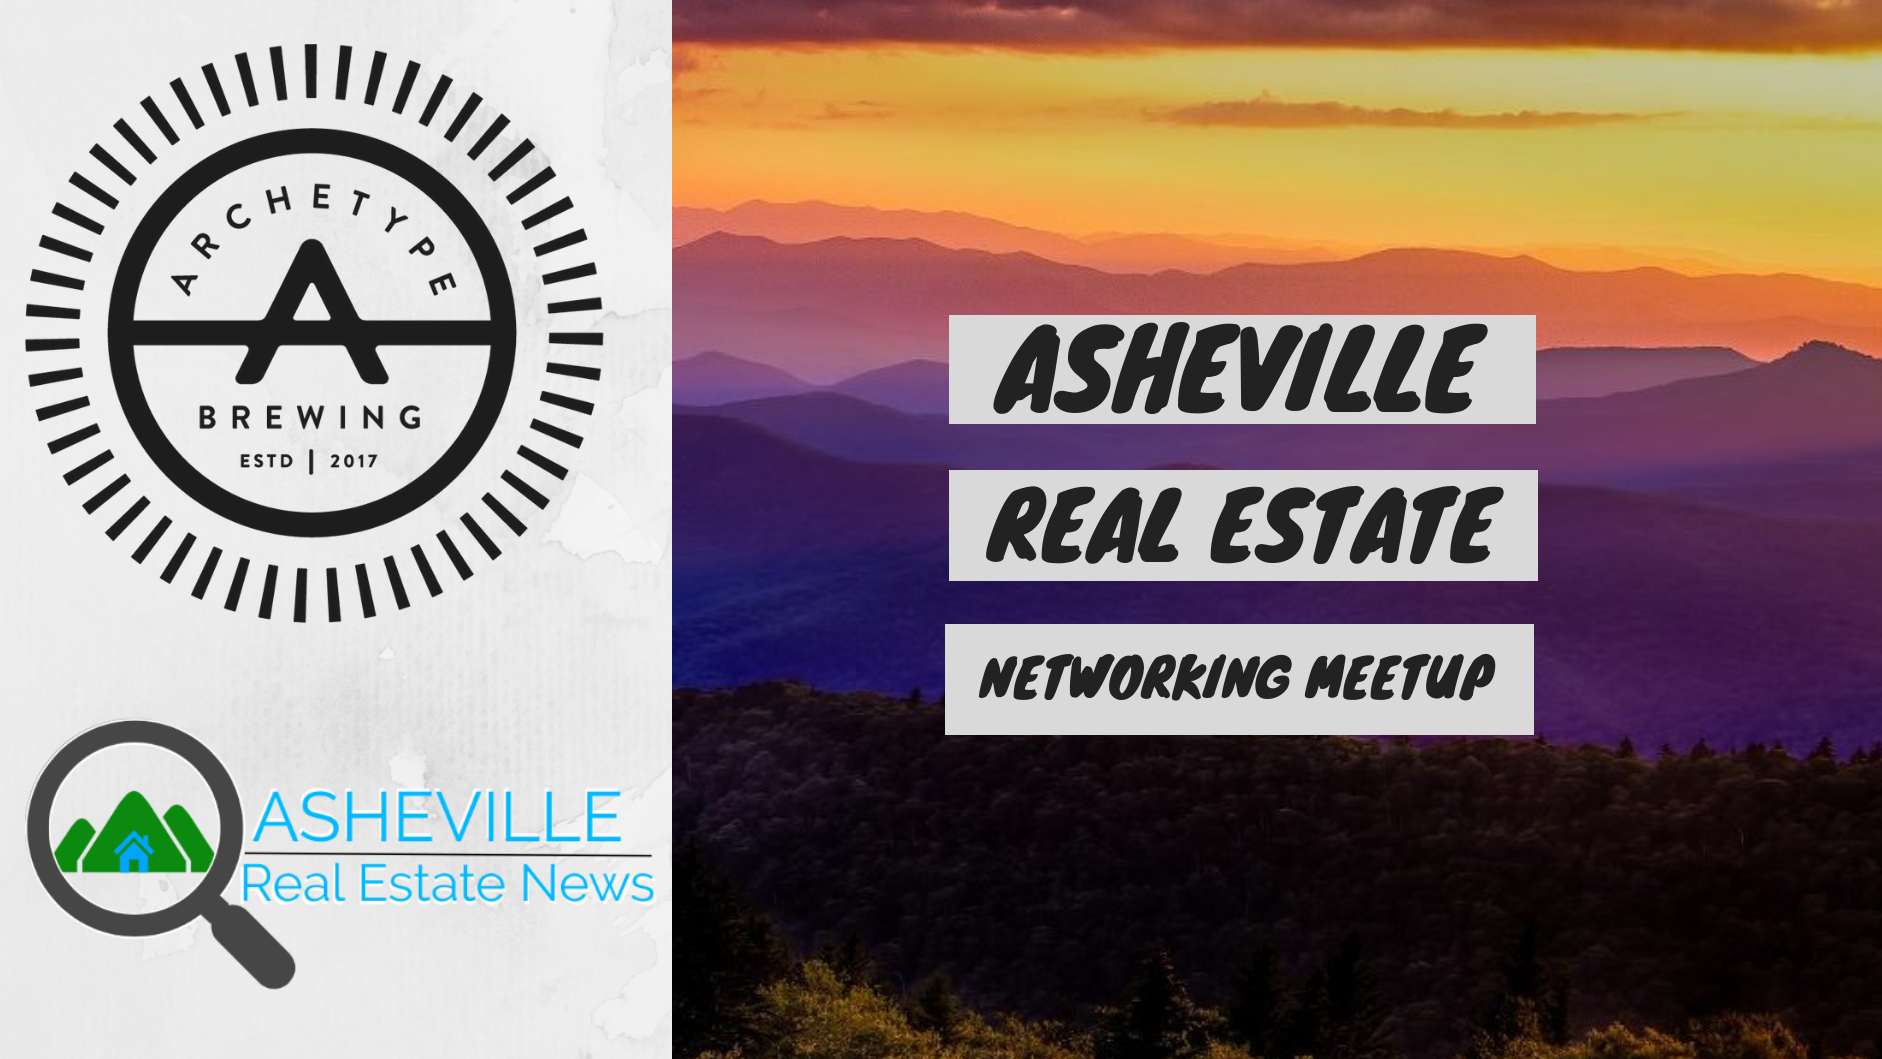 Grab a beer and connect with others in the real estate investing